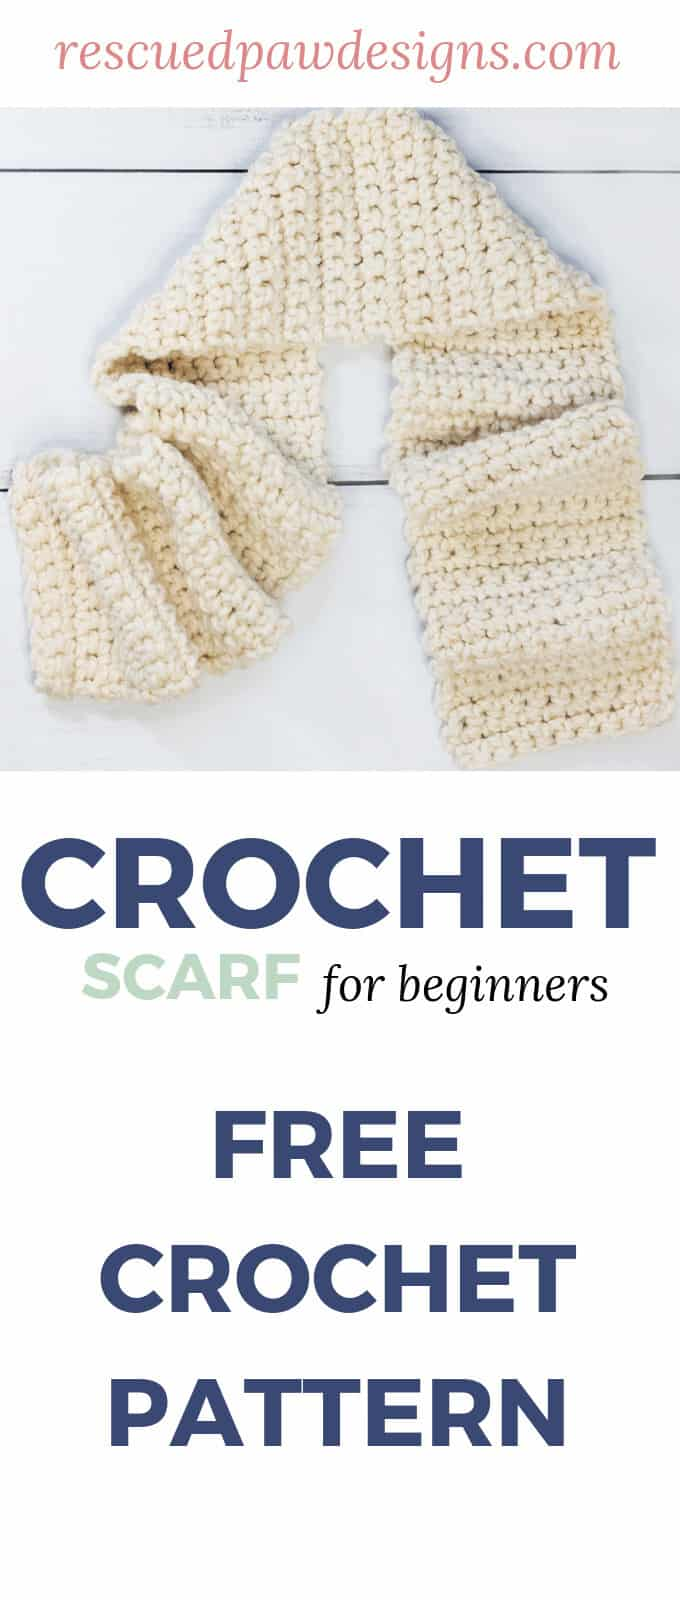 How to Crochet A scarf for beginners